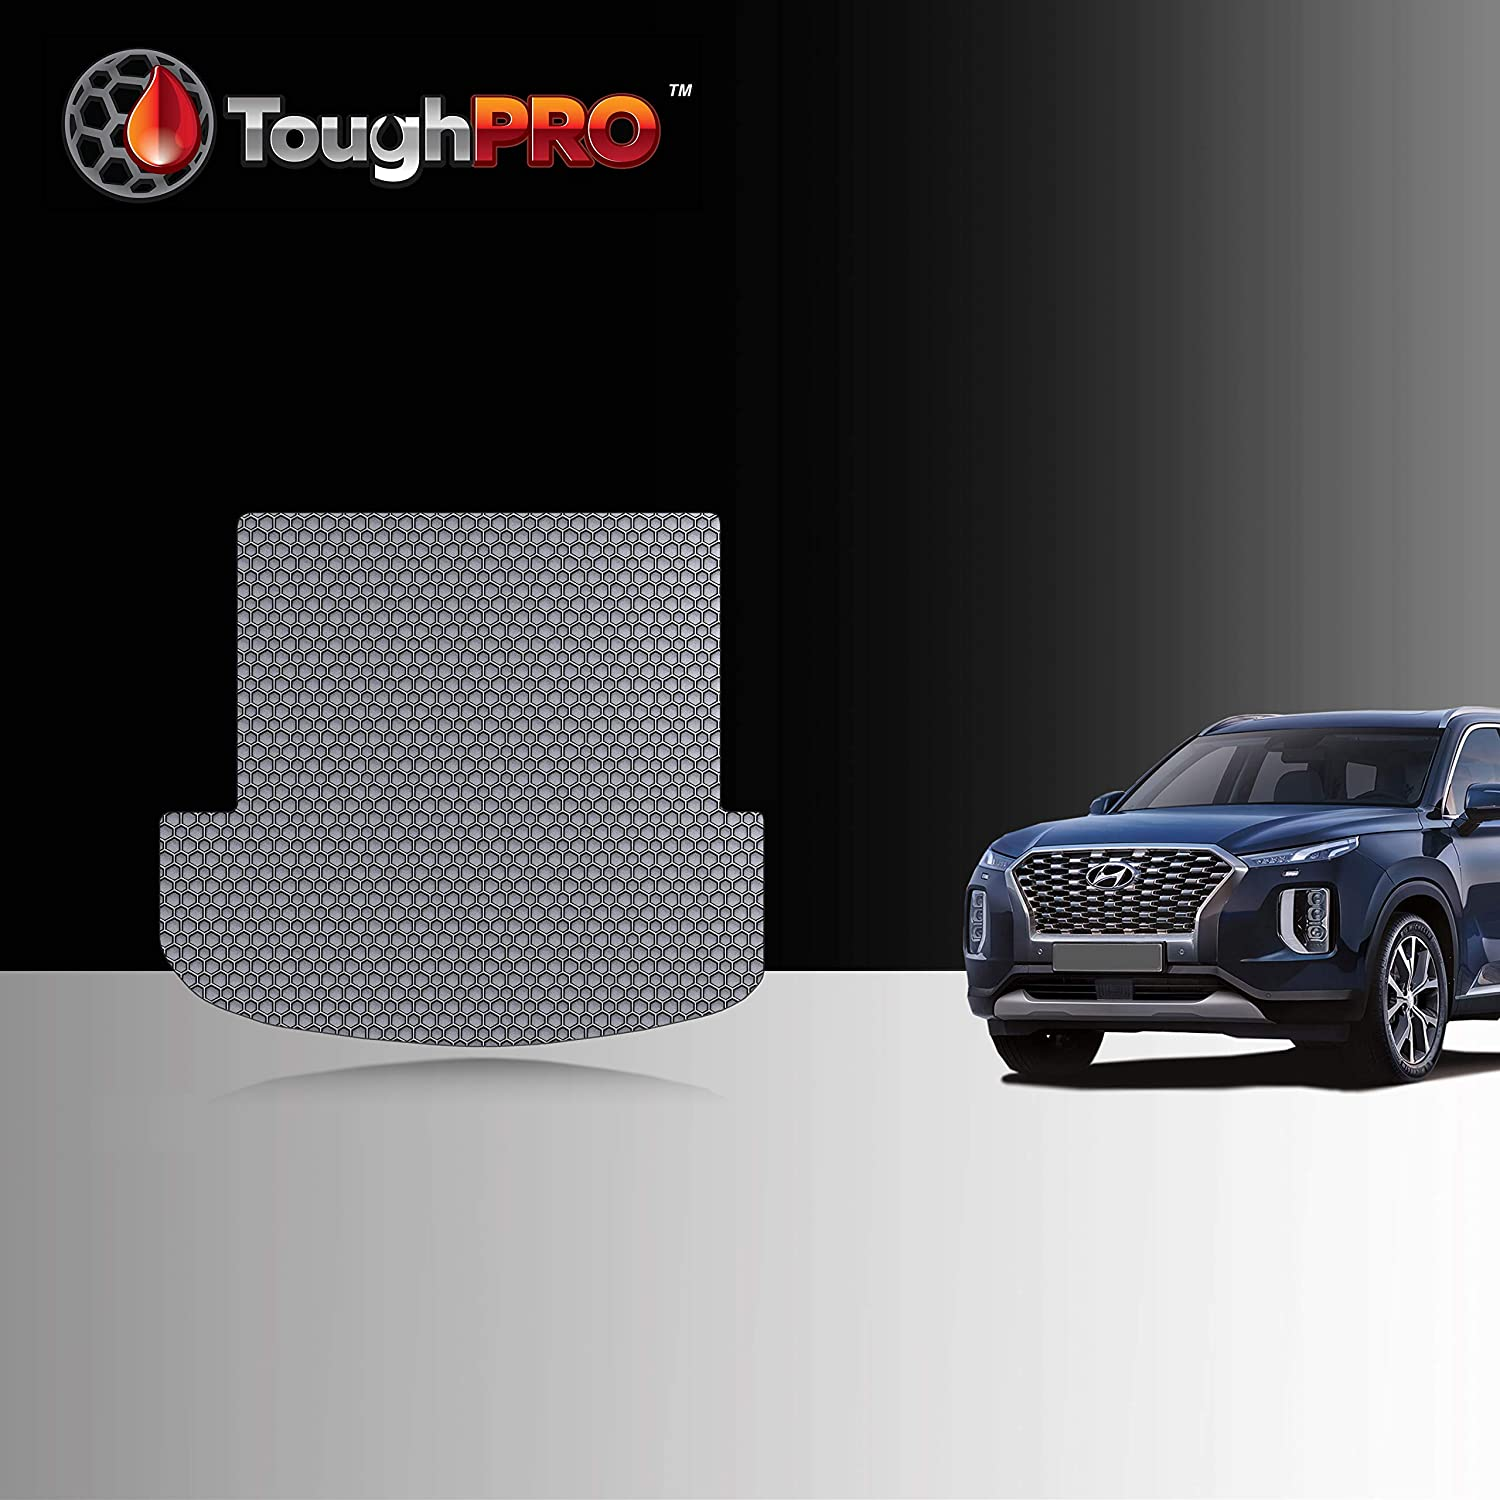 ToughPRO Cargo/Trunk Mat Compatible with Hyundai Palisade - 3rd Row Down - All Weather - Heavy Duty - (Made in USA) - Gray Rubber - 2020